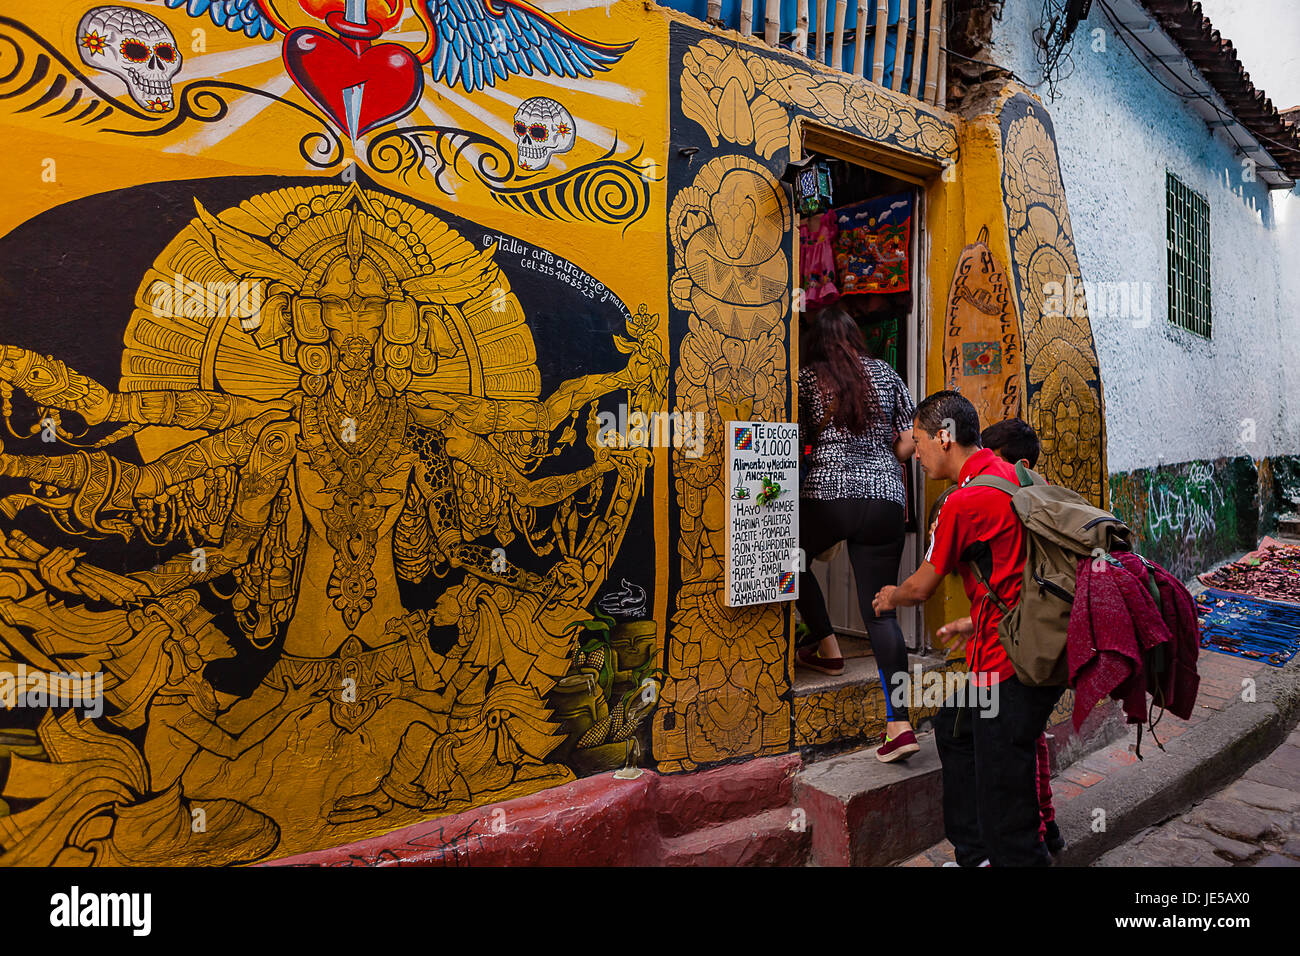 Bogotá, Colombia - A tourist checks a list outside a traditional shop in the narrow, colourful, cobblestoned - Stock Image